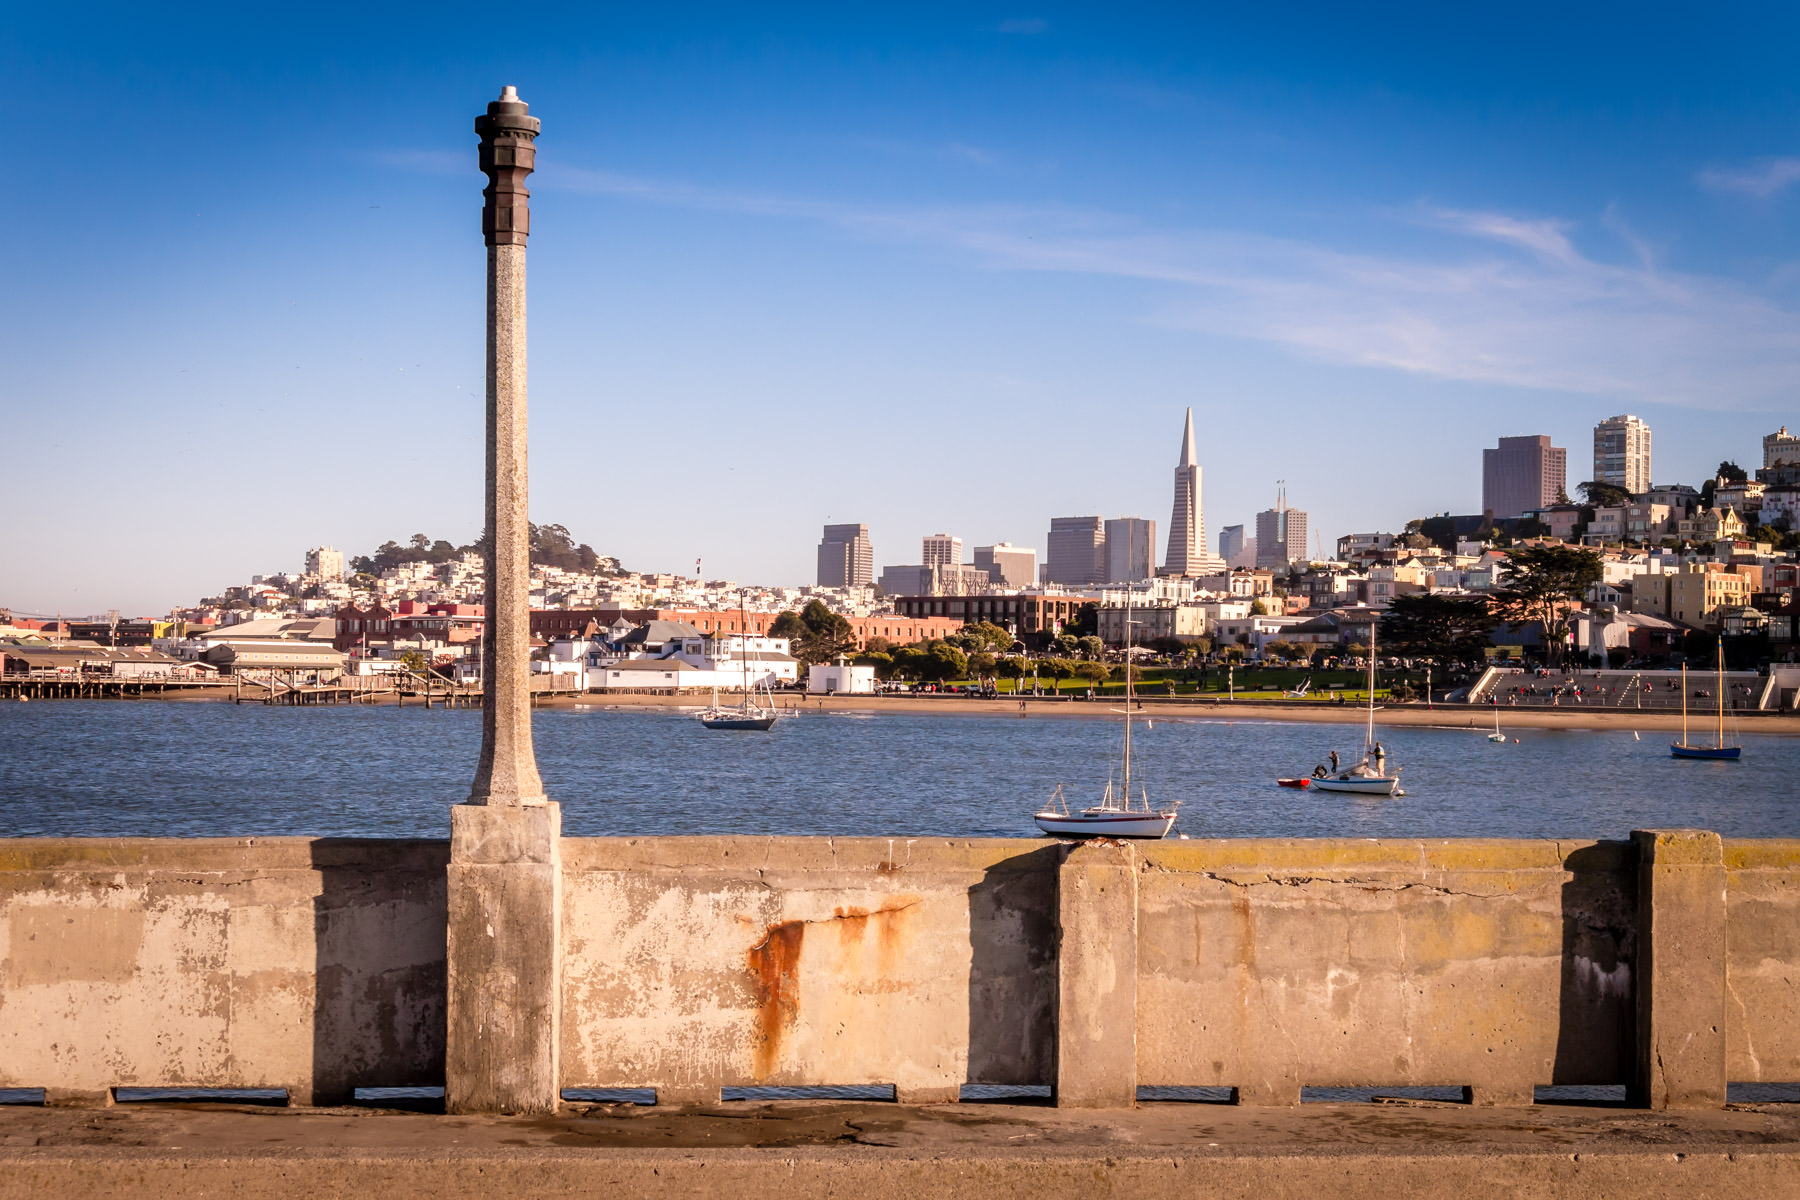 A light pole on San Francisco's crumbling Aquatic Park Pier rises in front of the city's iconic skyline.